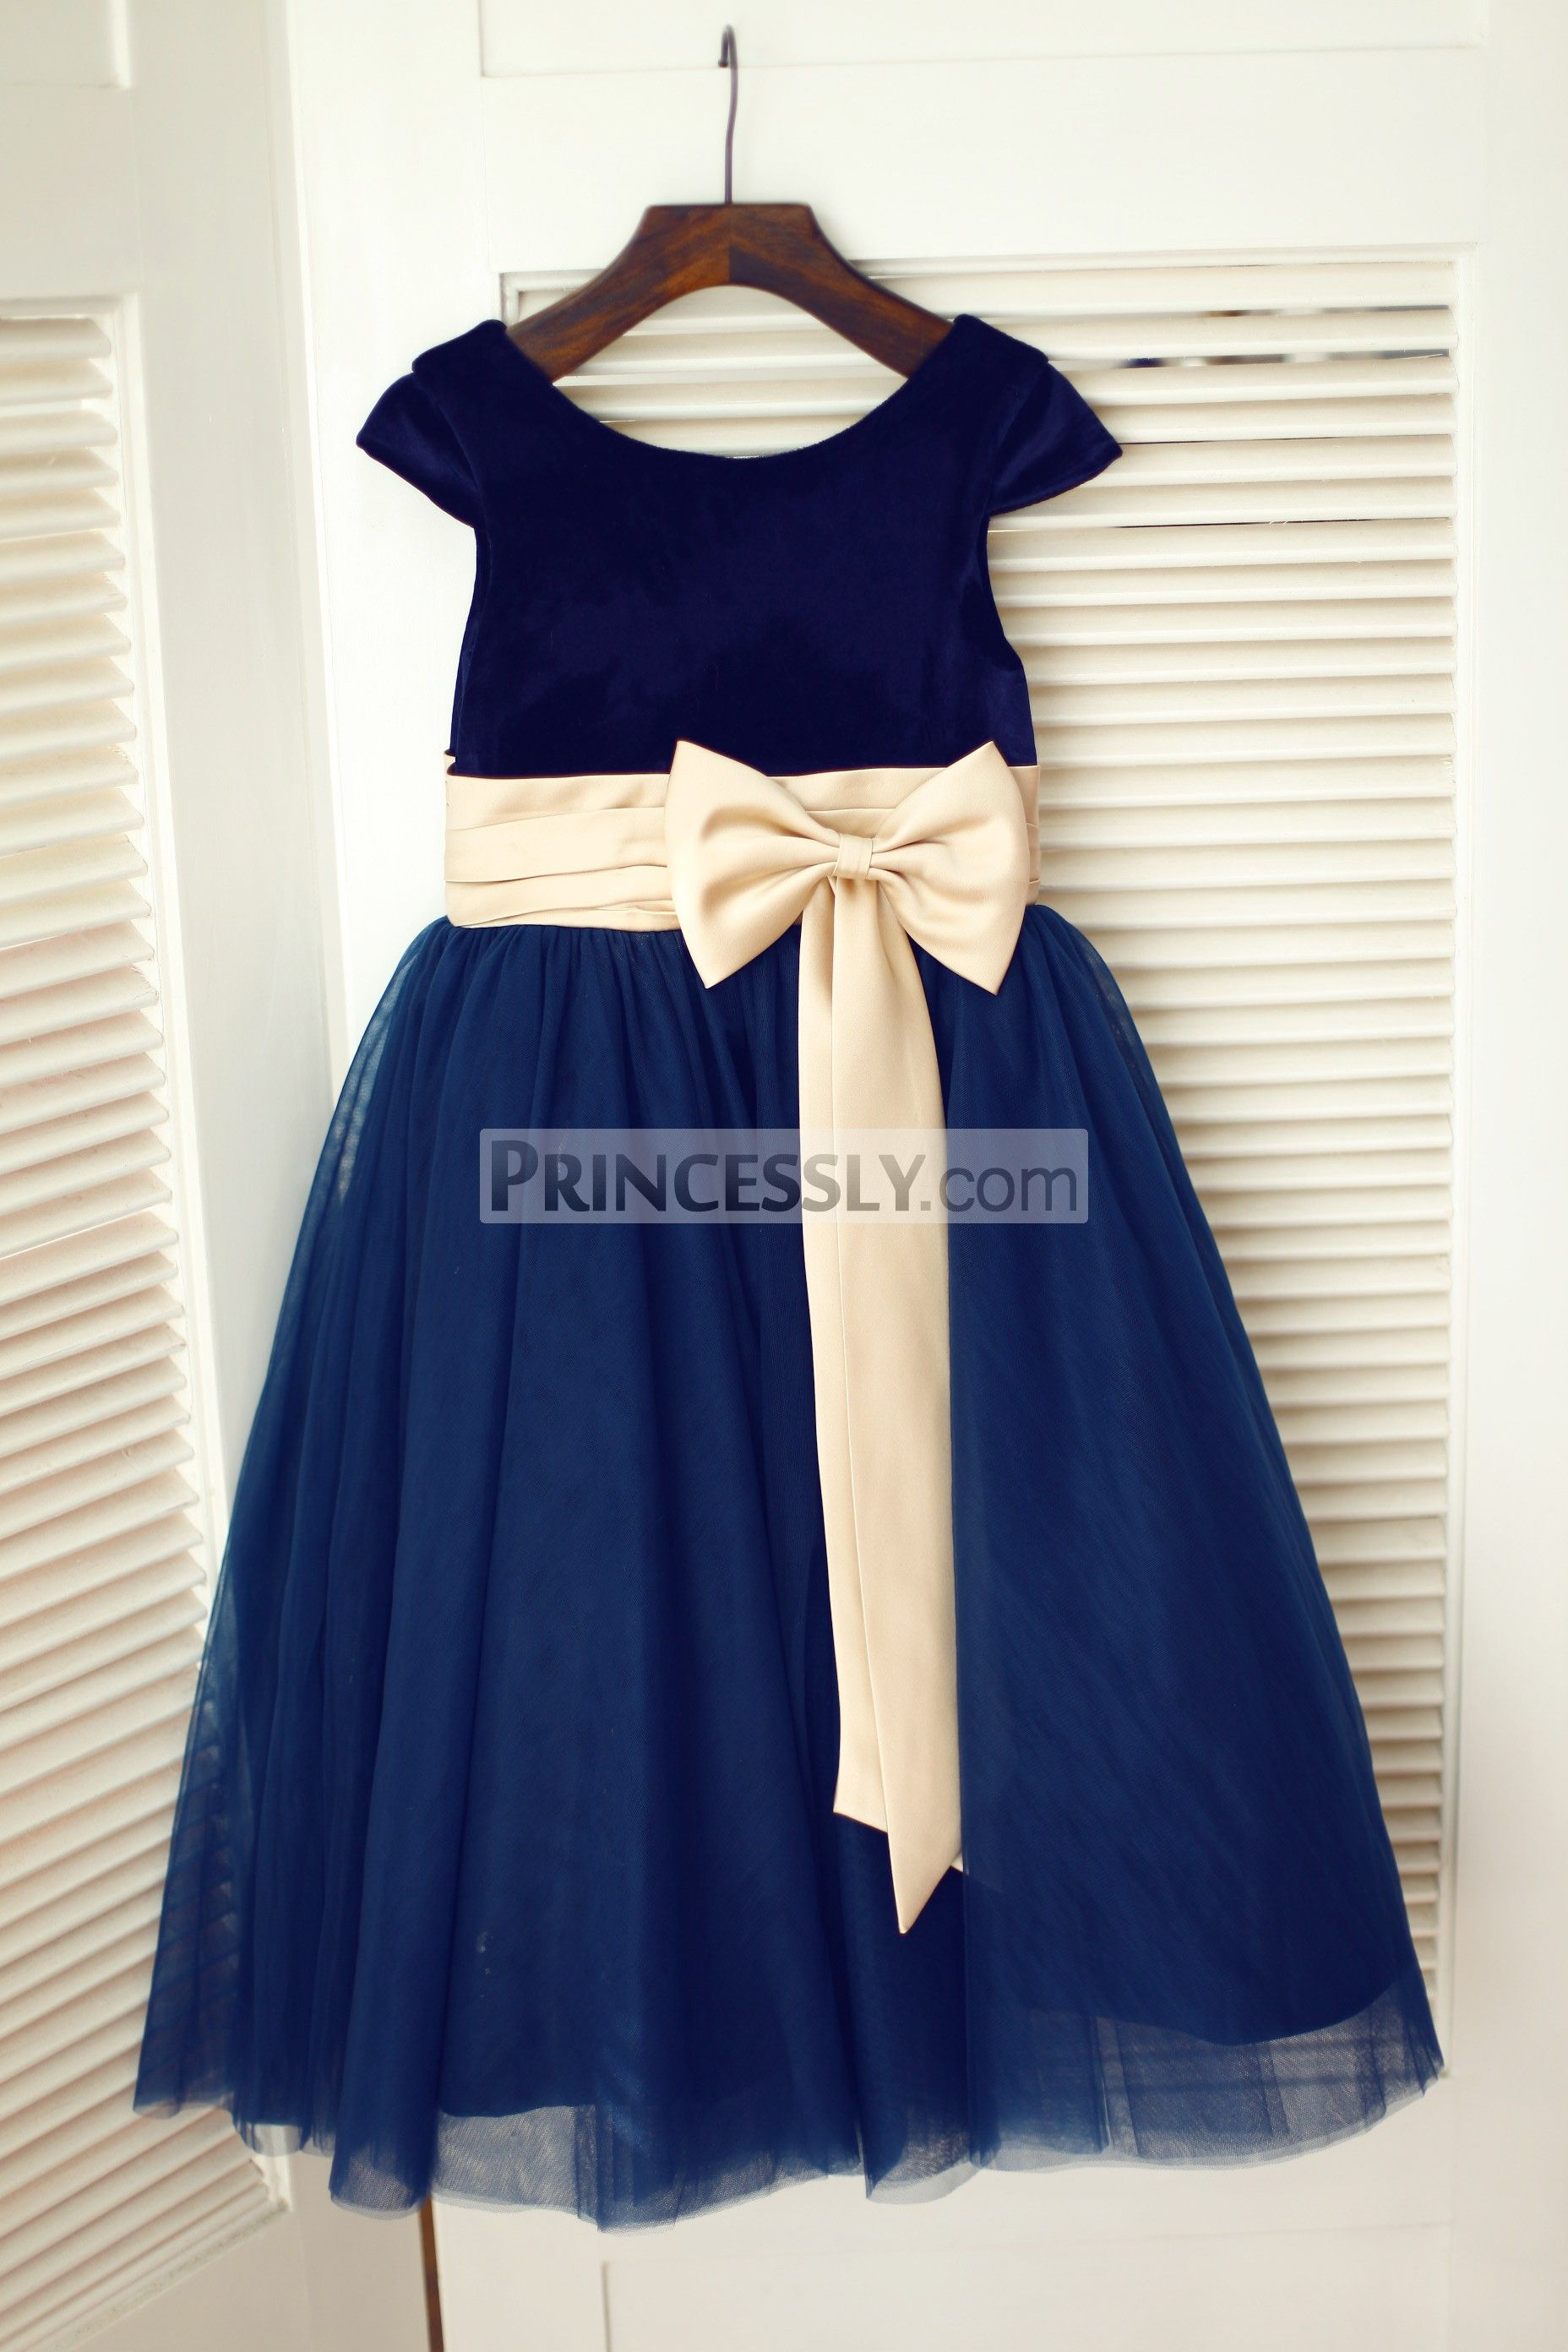 Navy blue velvet tulle cap sleeve wedding flower girl dress with princessly k1003337 navy blue velvet tulle cap sleeve wedding flower girl dress with izmirmasajfo